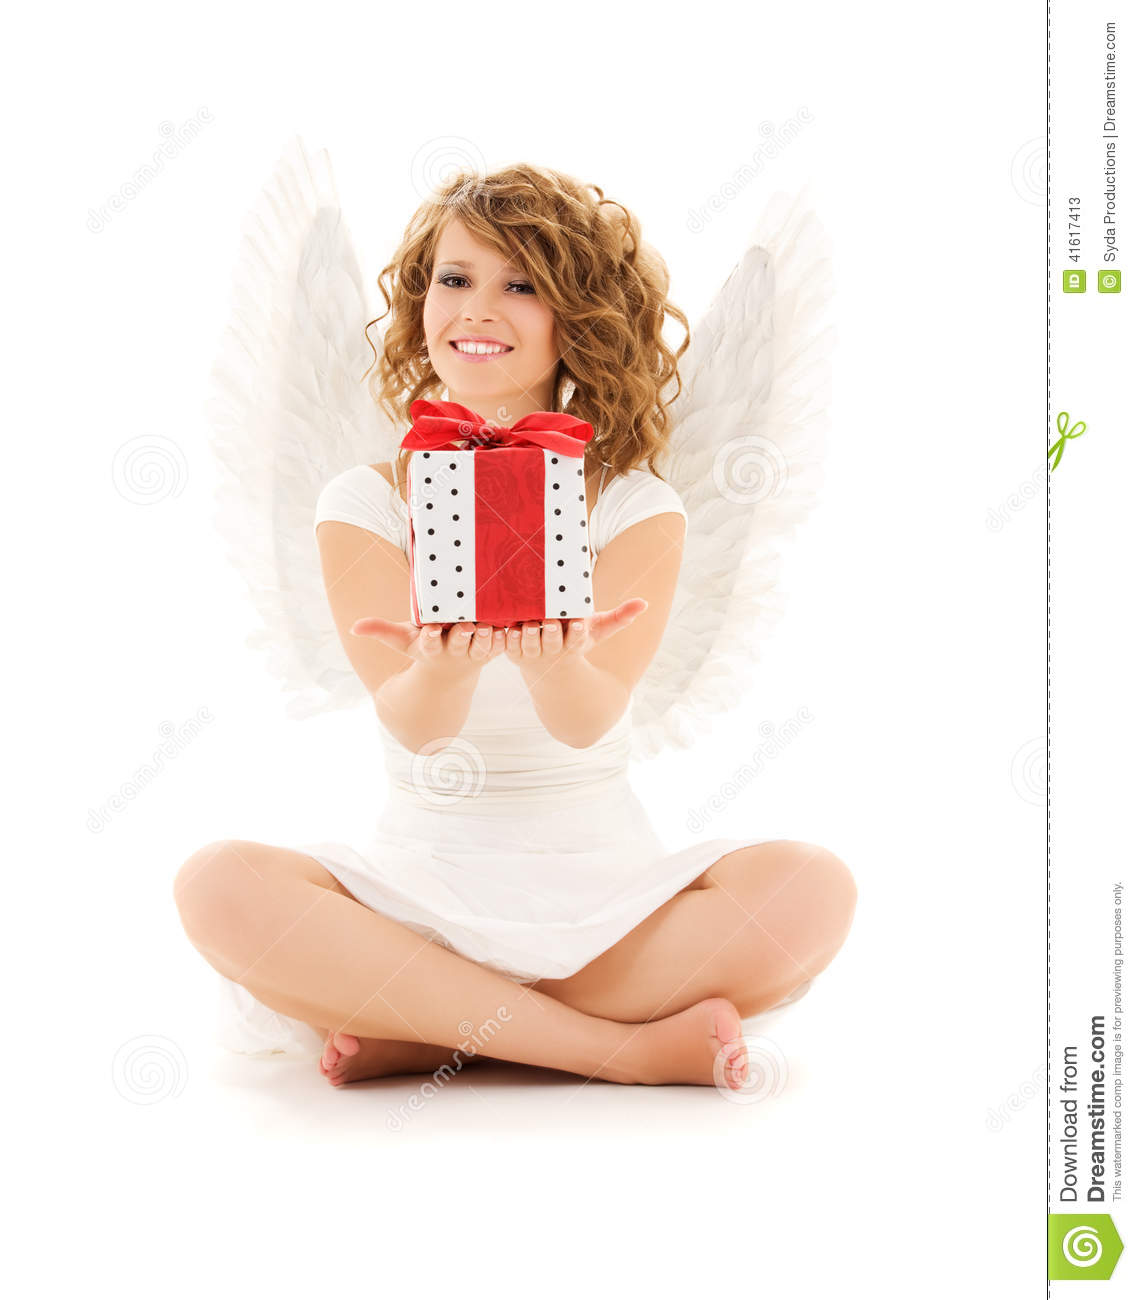 Download Angel with gift stock image. Image of happy, lady, holiday - 41617413